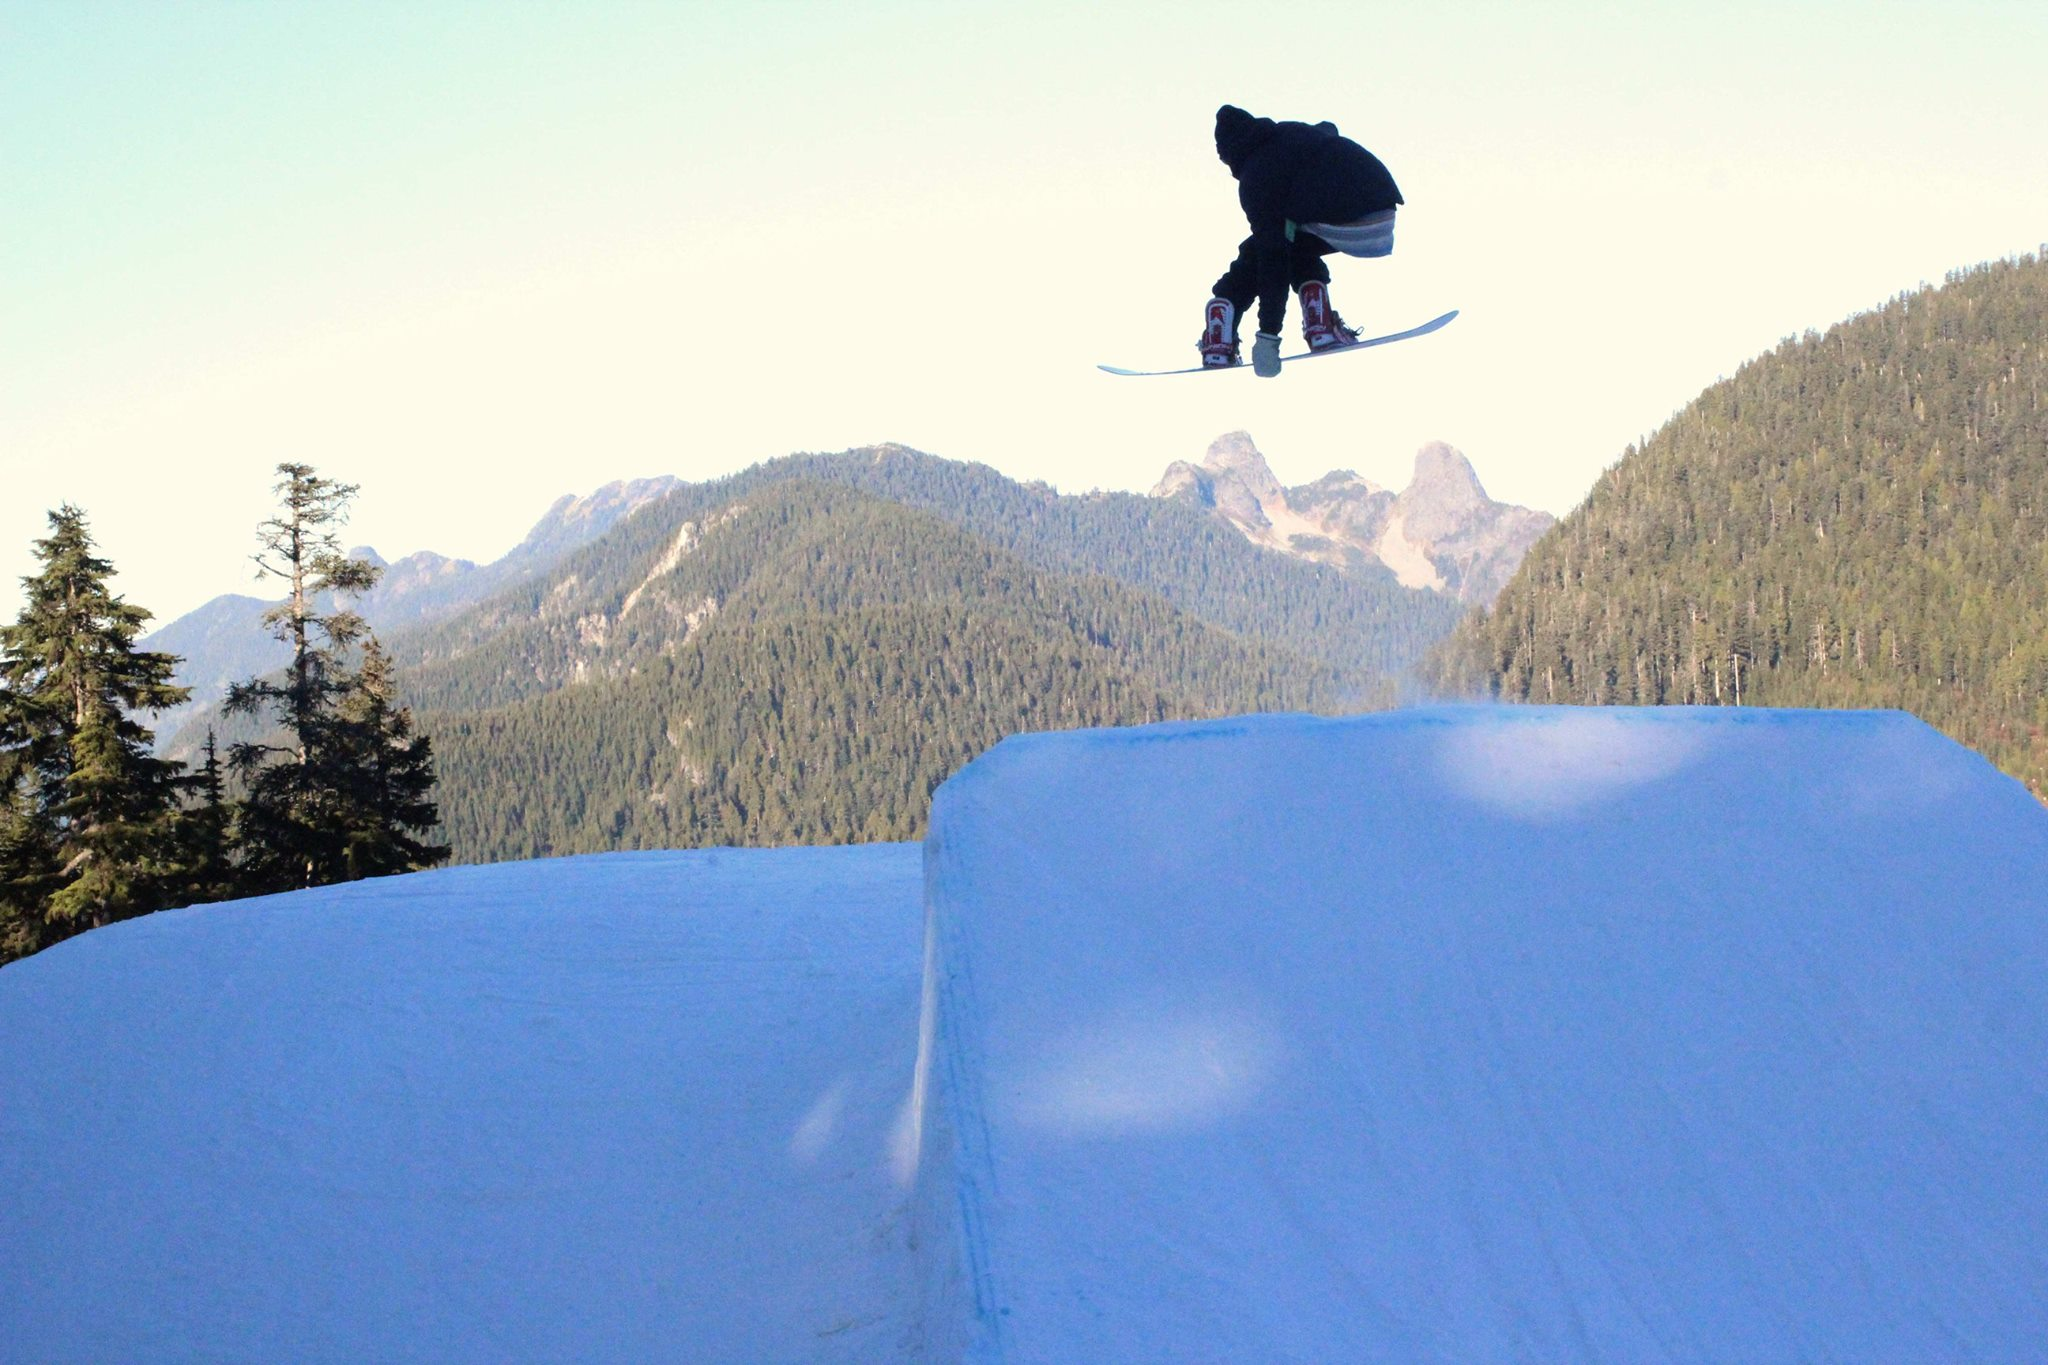 Vancouver best snowboard city break Image courtesy of Cypress Mountain Facebook